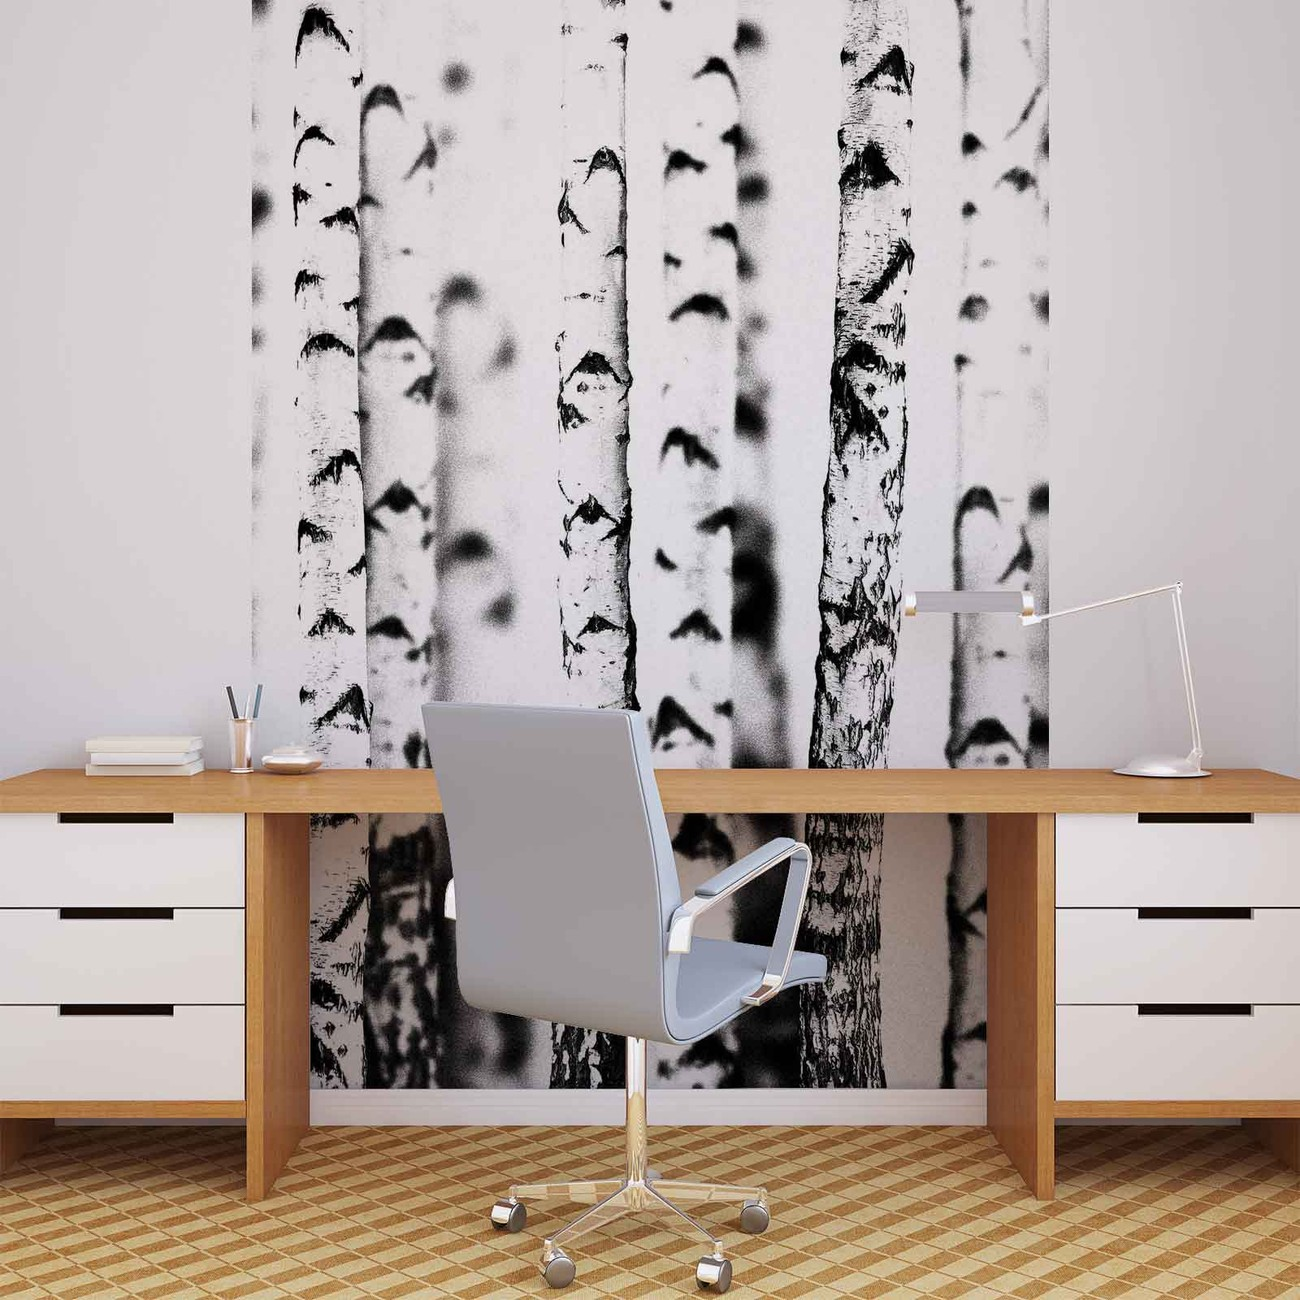 fototapete tapete schwarz wei b ume wald natur bei. Black Bedroom Furniture Sets. Home Design Ideas